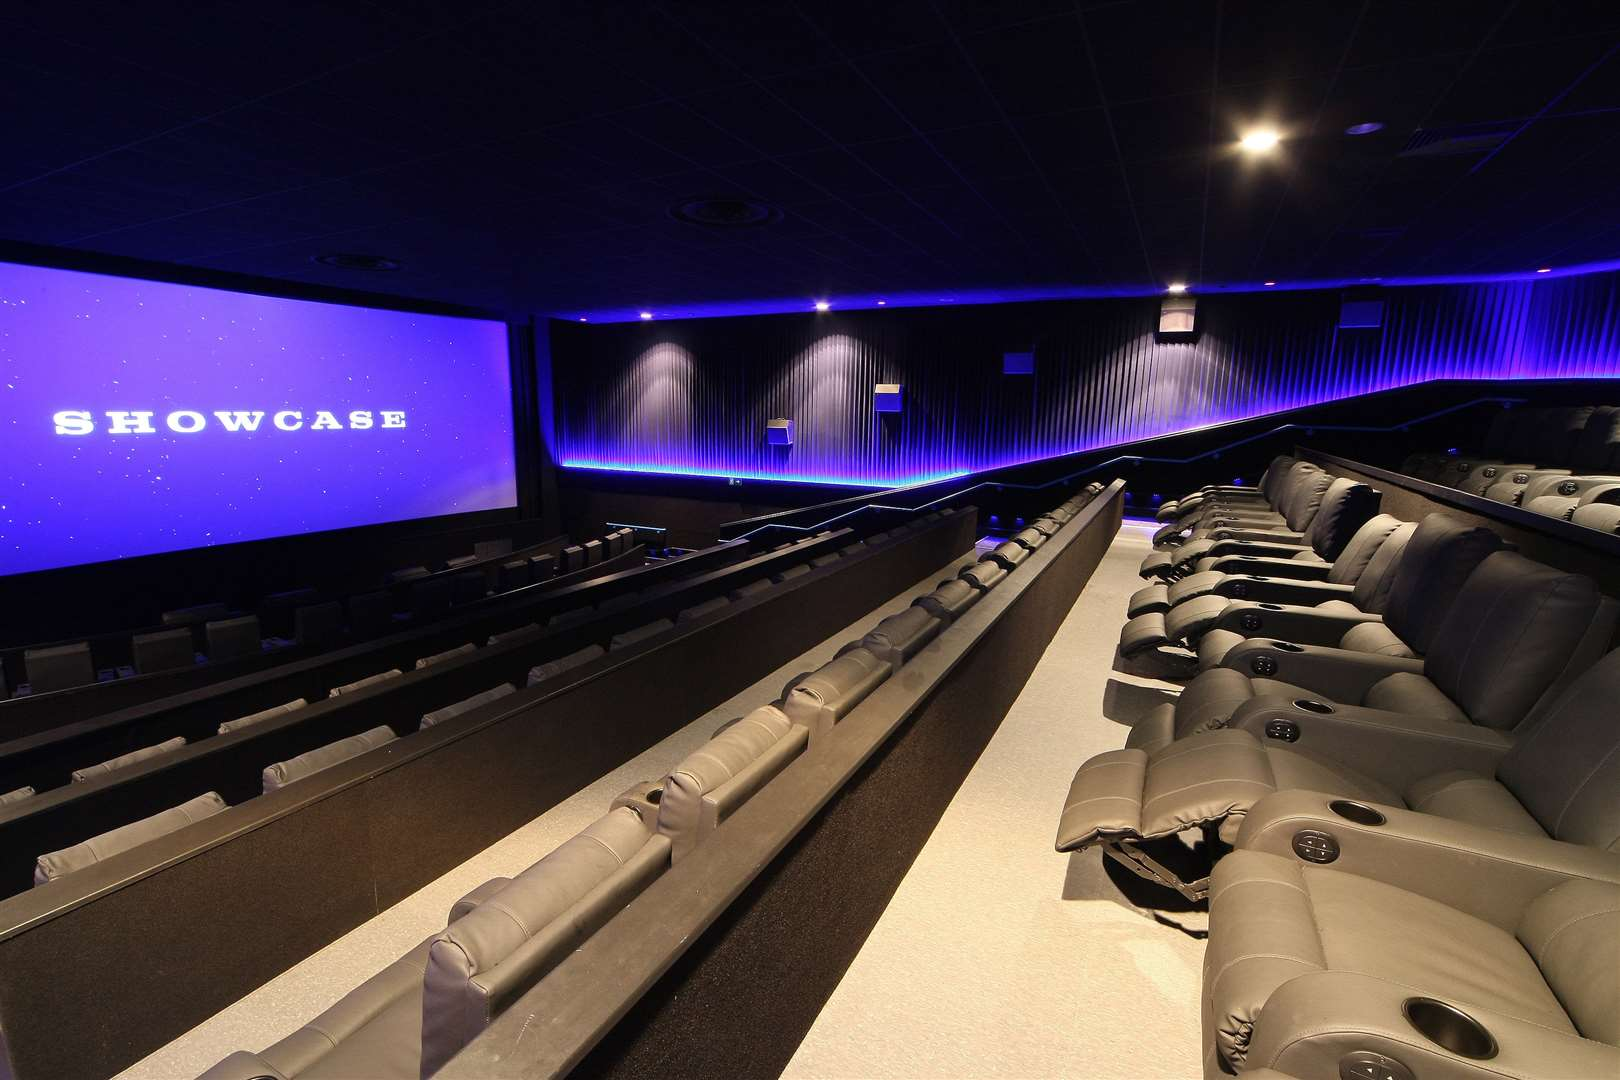 Showcase Cinema de Lux Bluewater now has luxurious recliner seating